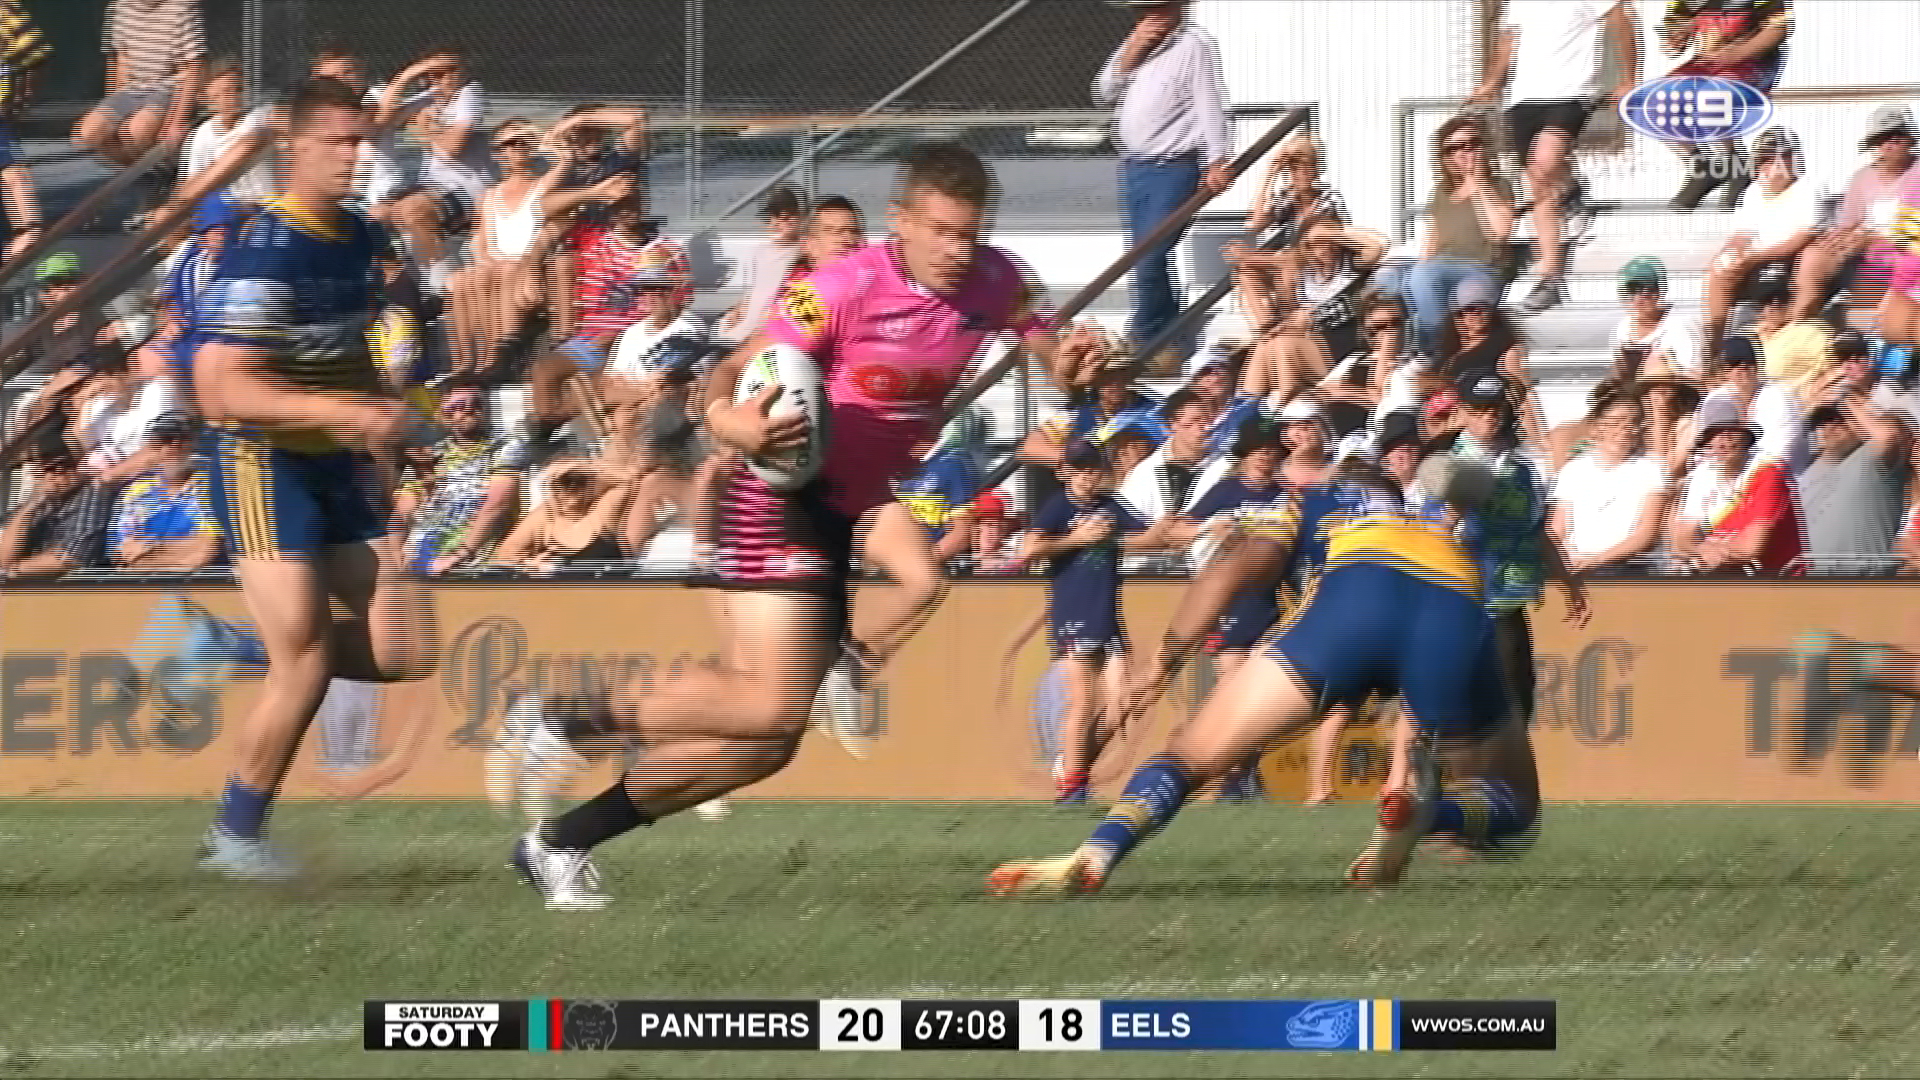 Bushfire Appeal Trial Match - Penrith Panthers v Parramatta Eels